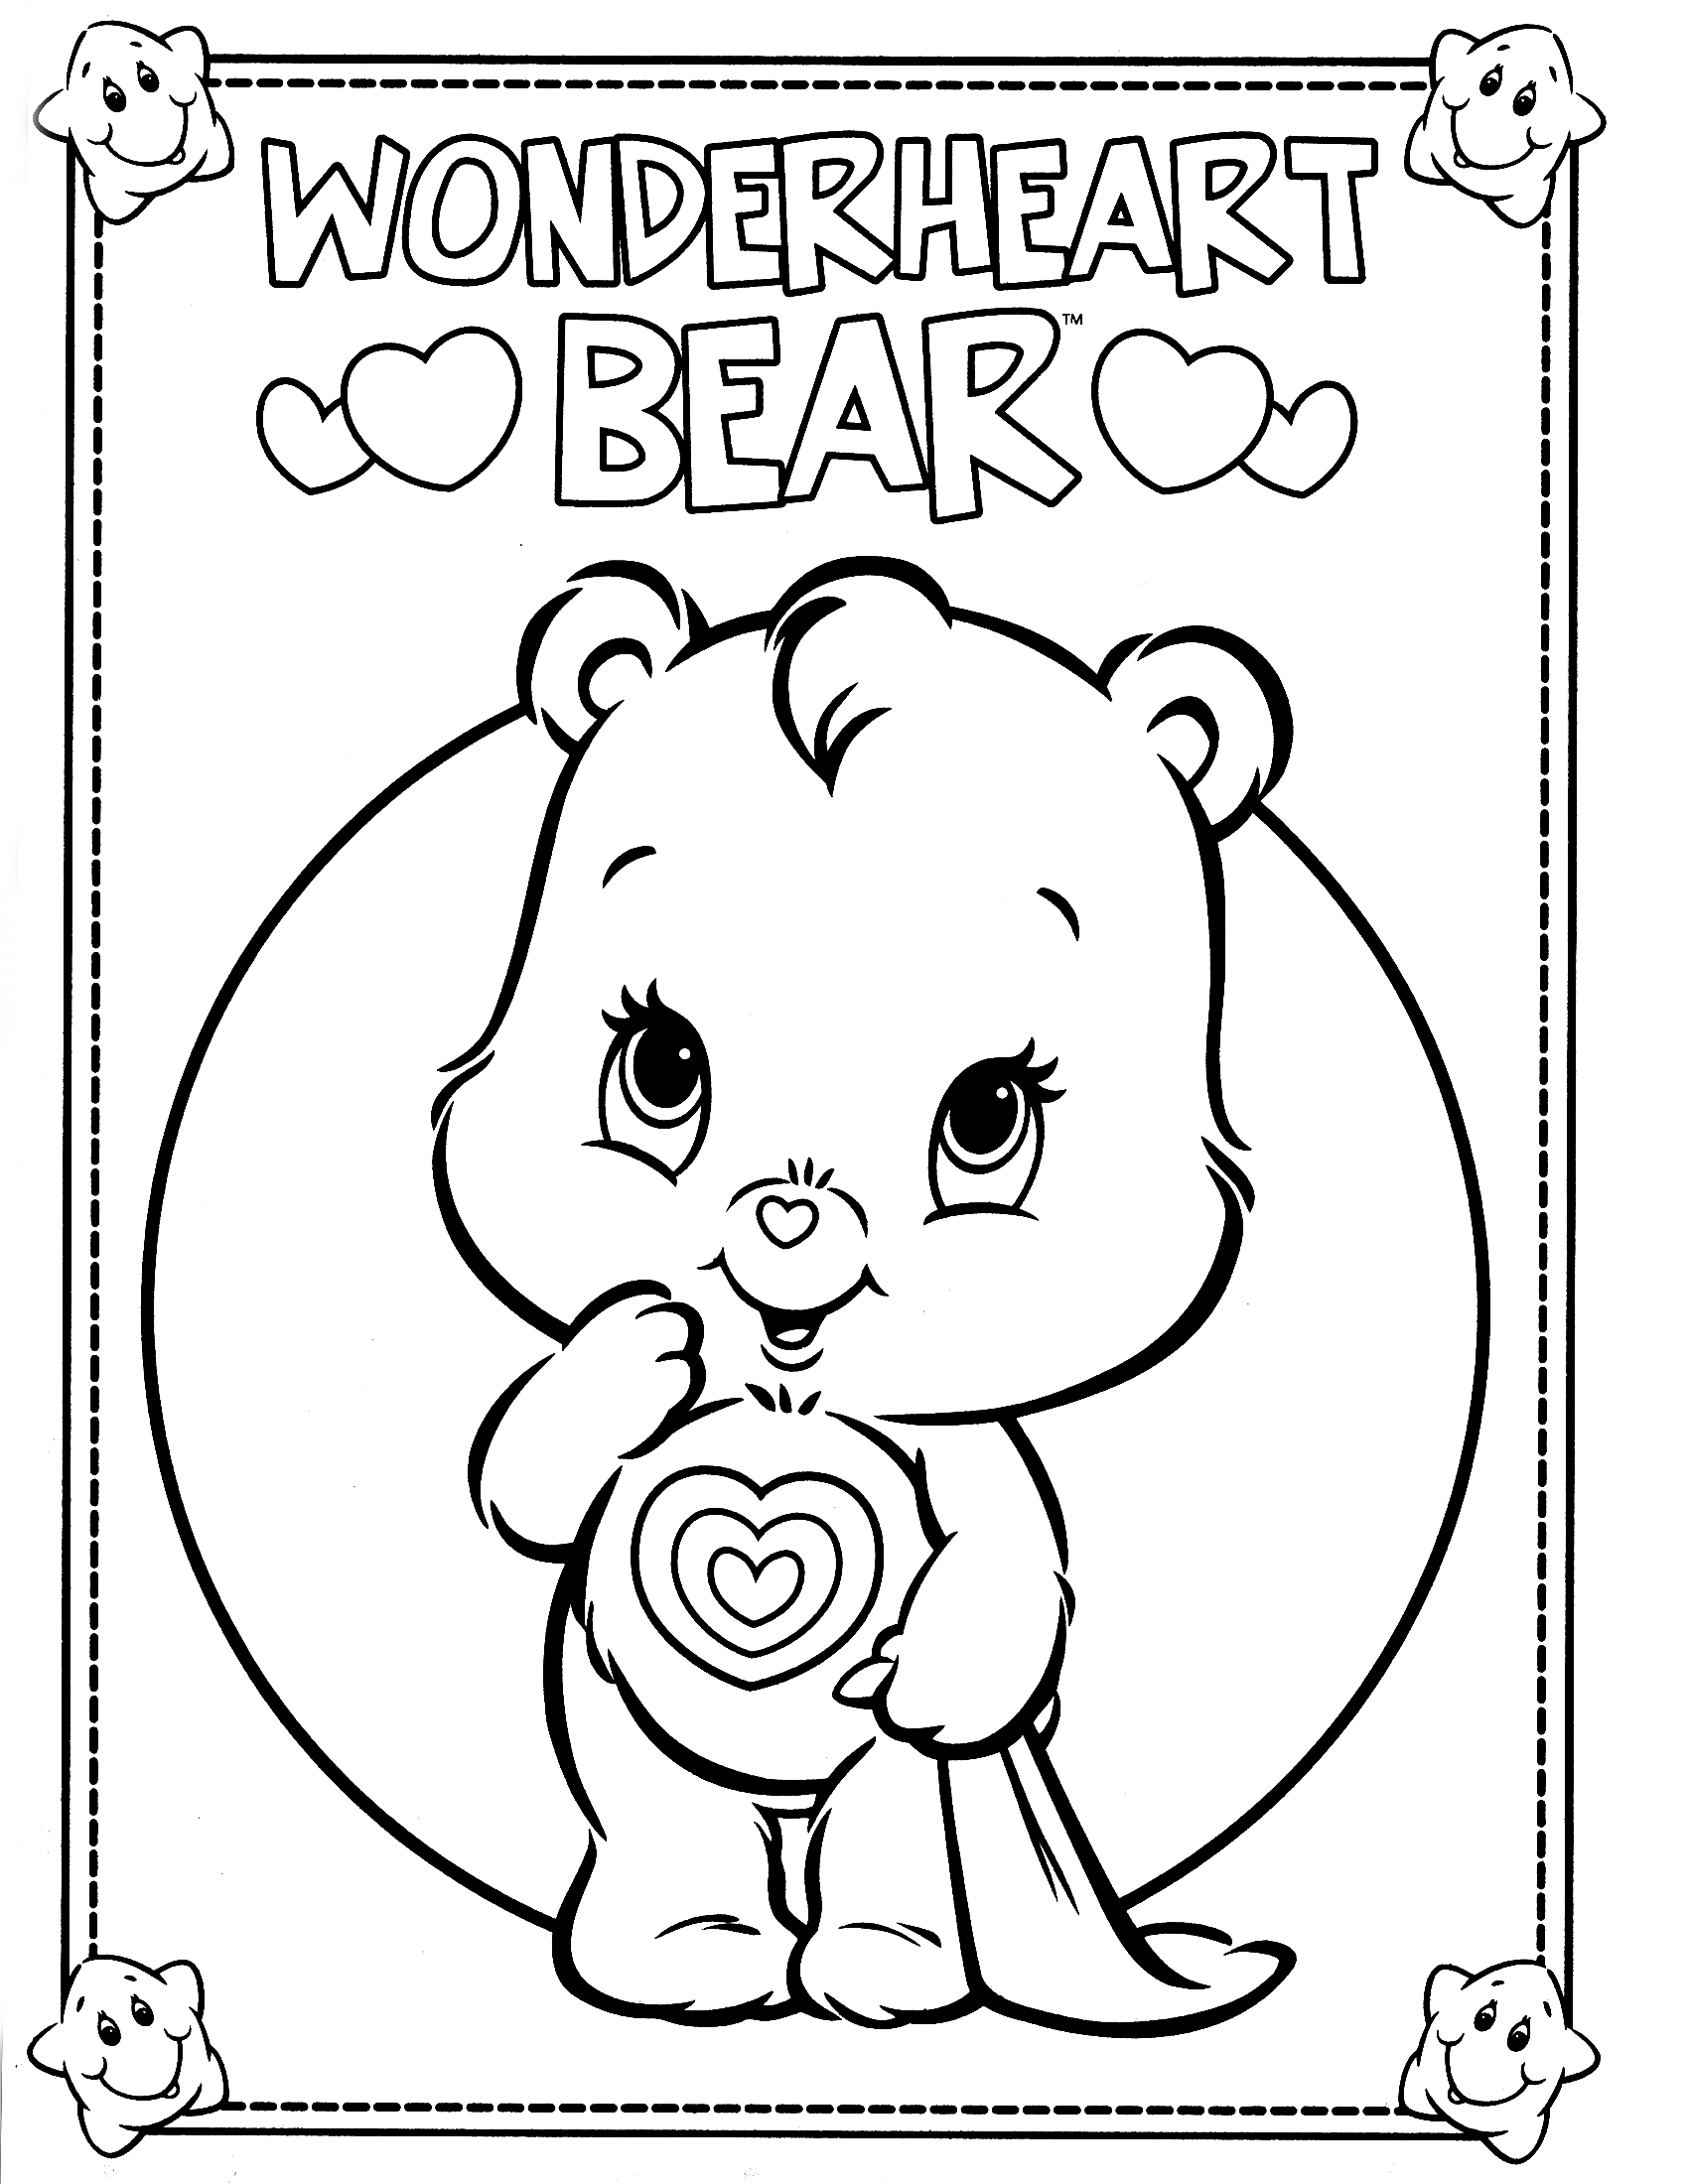 free coloring pages bears free easy to print bear coloring pages in 2020 bear bears pages coloring free